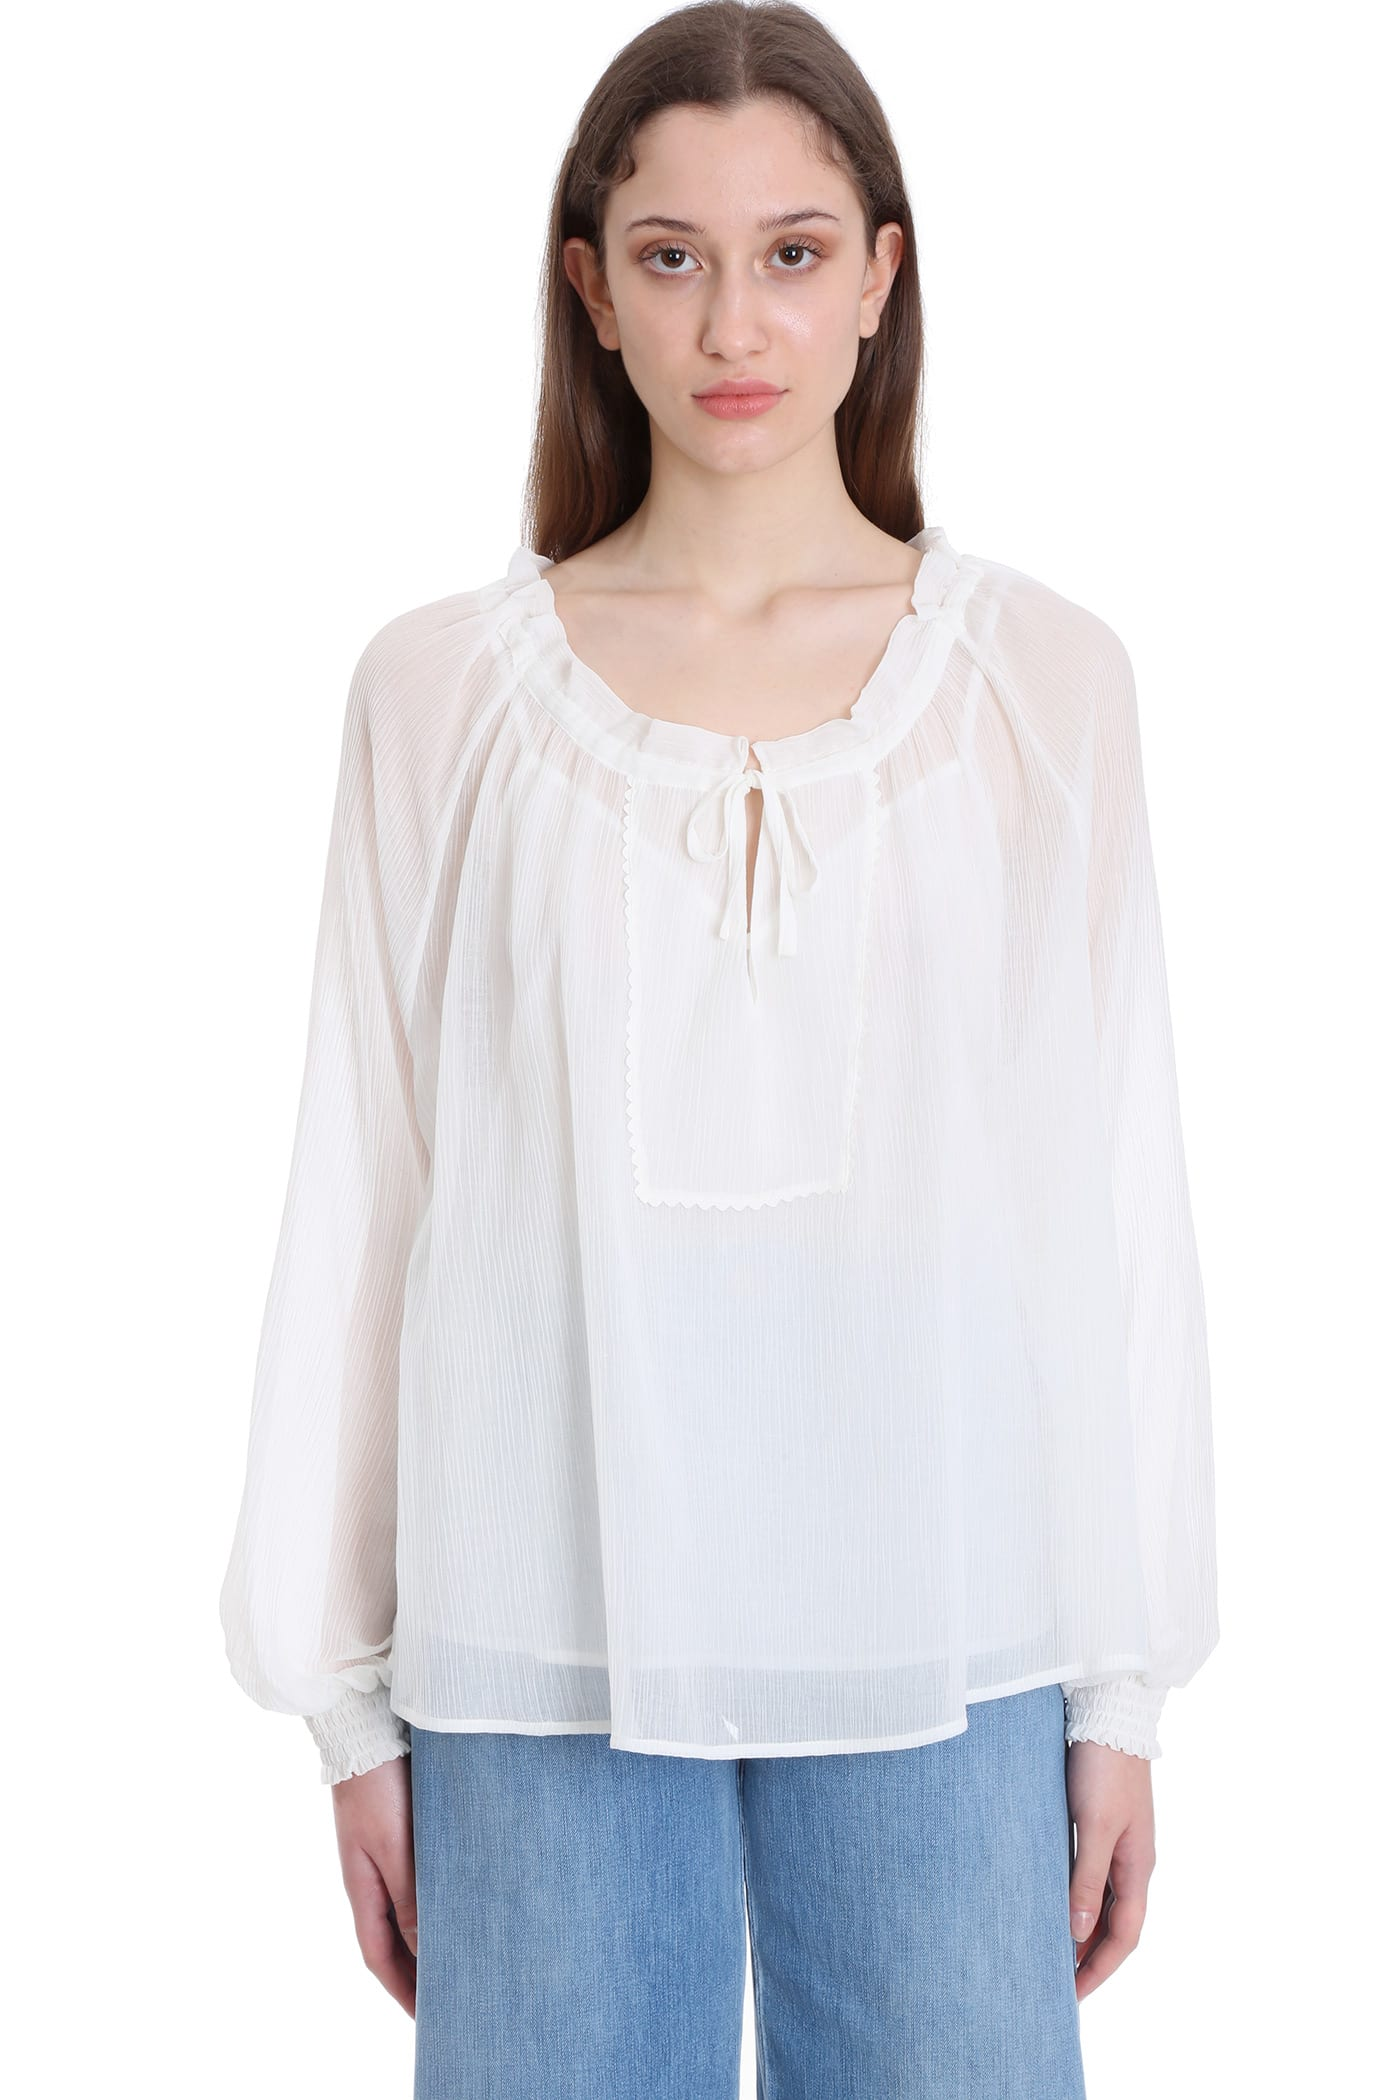 SEE BY CHLOÉ BLOUSE IN WHITE COTTON